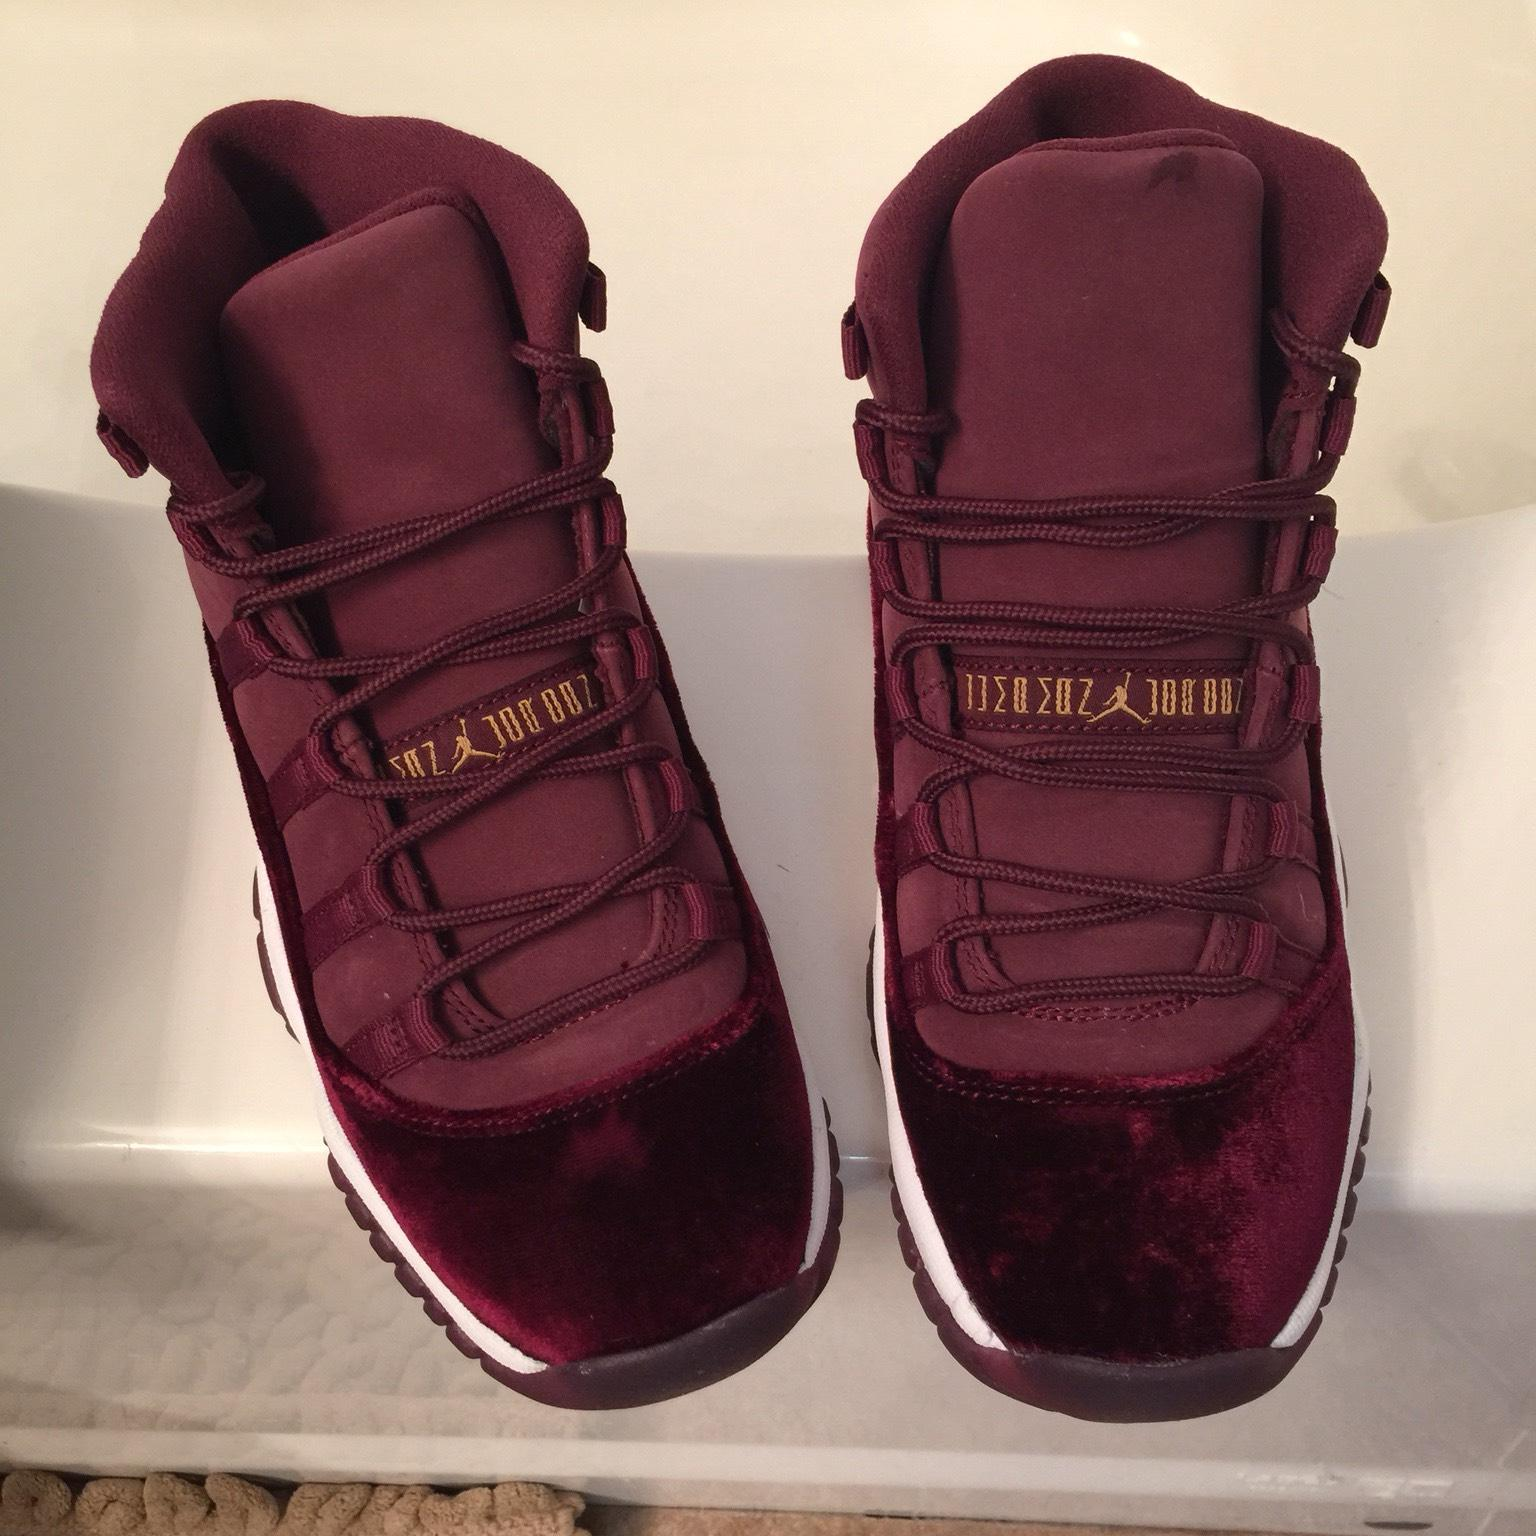 the best attitude 846be 2dc43 ... red b0645 3baf8 shop air jordan maroon retro 11s rl gg velvet sneakers  size us 6.5 regular m b tradesy ...